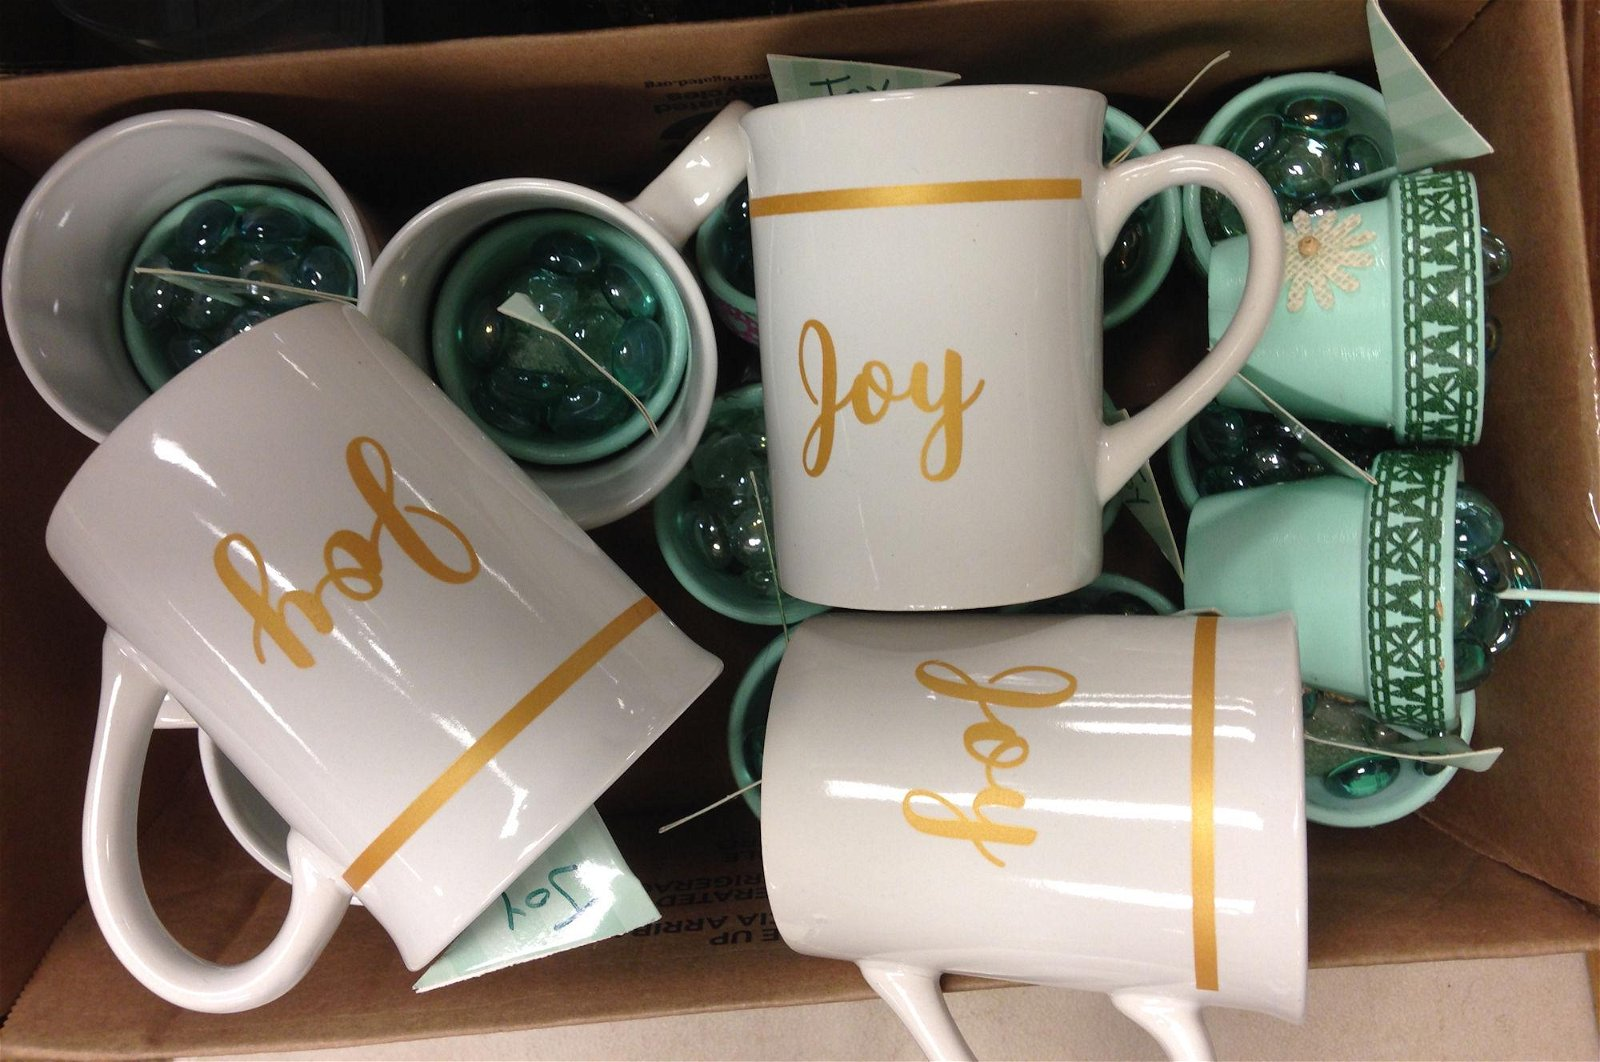 """3 BOX LOTS WITH MISC CLEAR GLASS CUPS, SHREK CUP, """"JOY"""""""